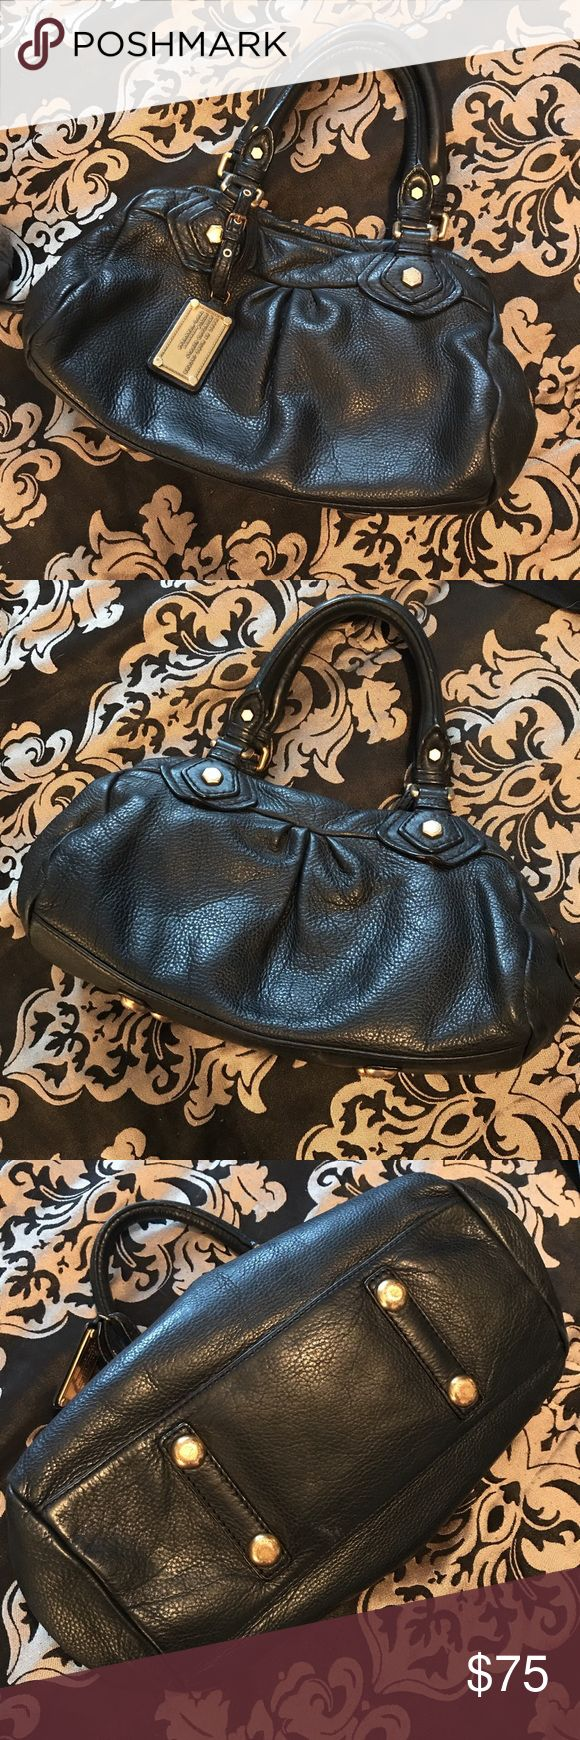 Marc Jacobs Classic Baby Q Groovee Bag Hardly any wear n tear. Not one crack in leather. It's a beauty! Black with hardly a damaged corner. Seriously great shape. I cleaned it with leather cleaner and protector. Check out my other listings here & on De Pop & Merc. I have a shop on Etsy too. White rabbit vintage shoppe Dallas. Thanks! Marc Jacobs Bags